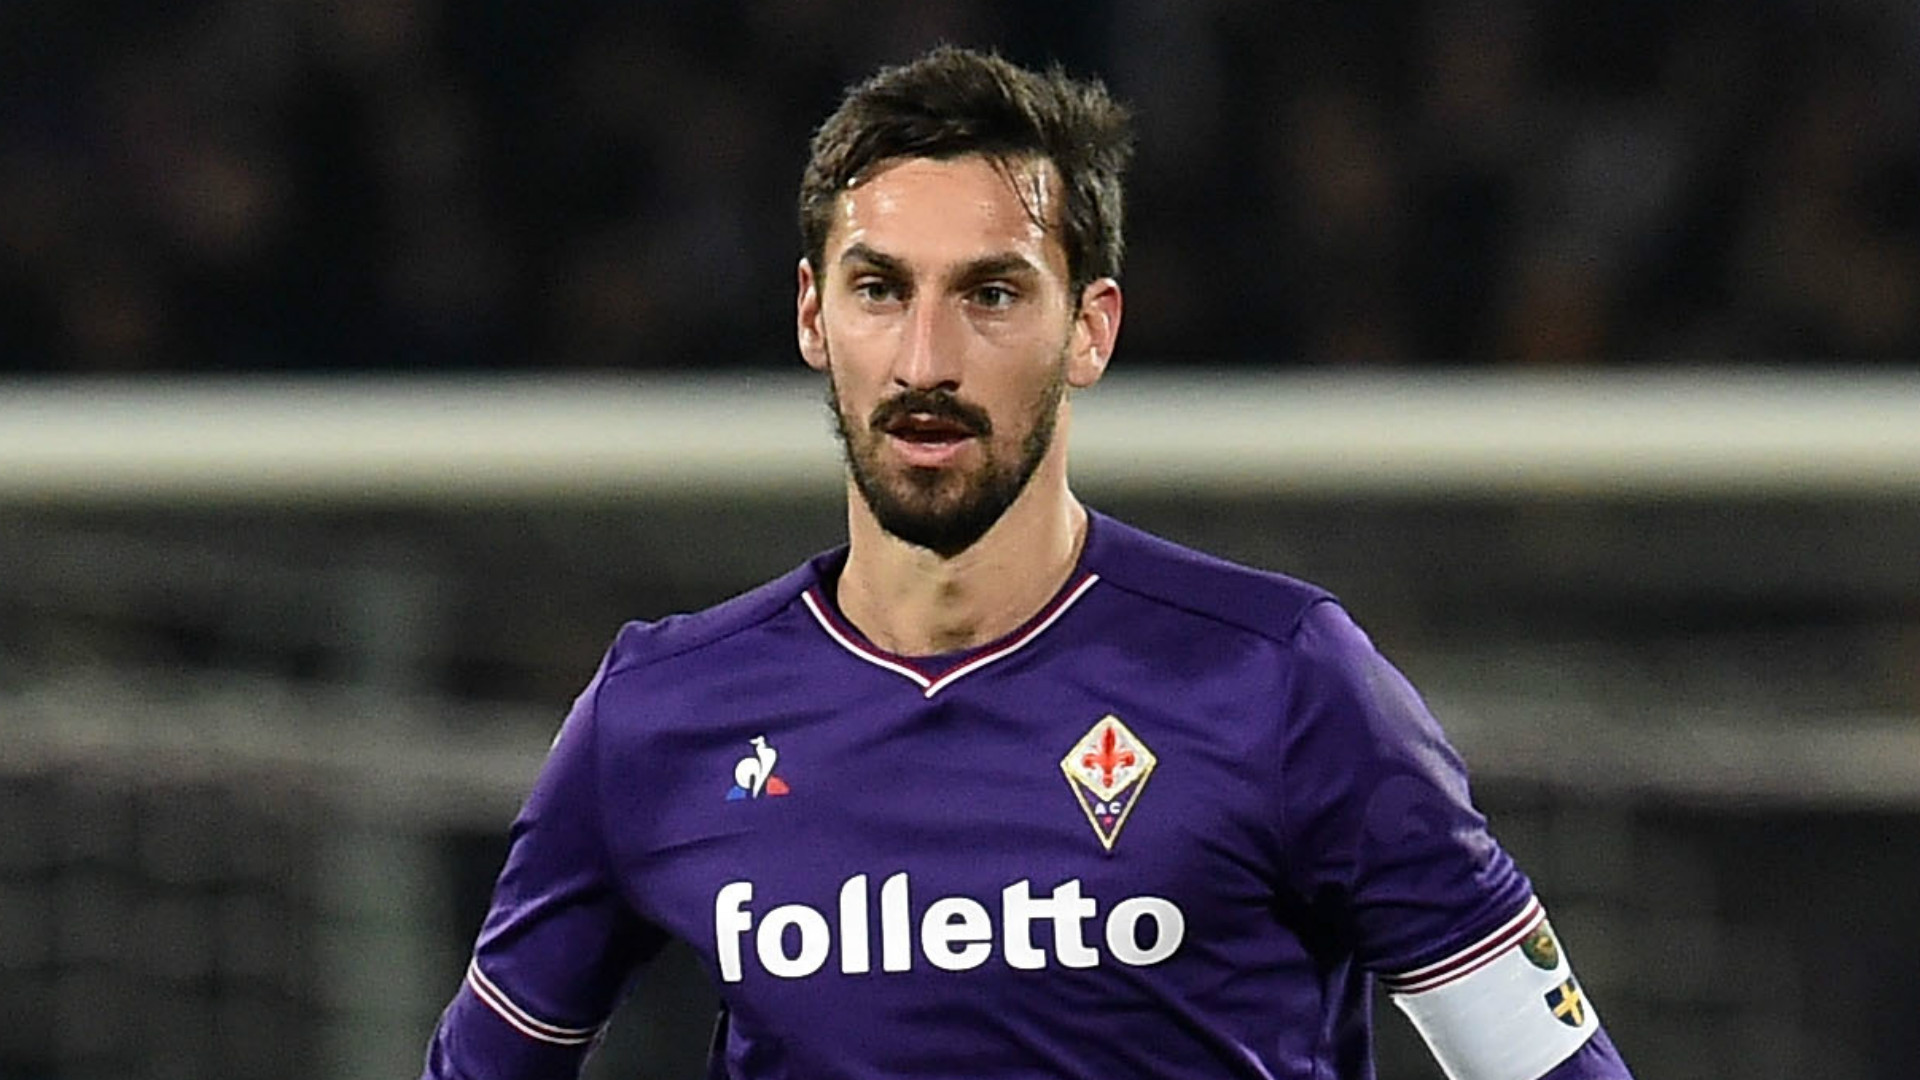 Fiorentina's Astori died of cardiac arrest, autopsy finds